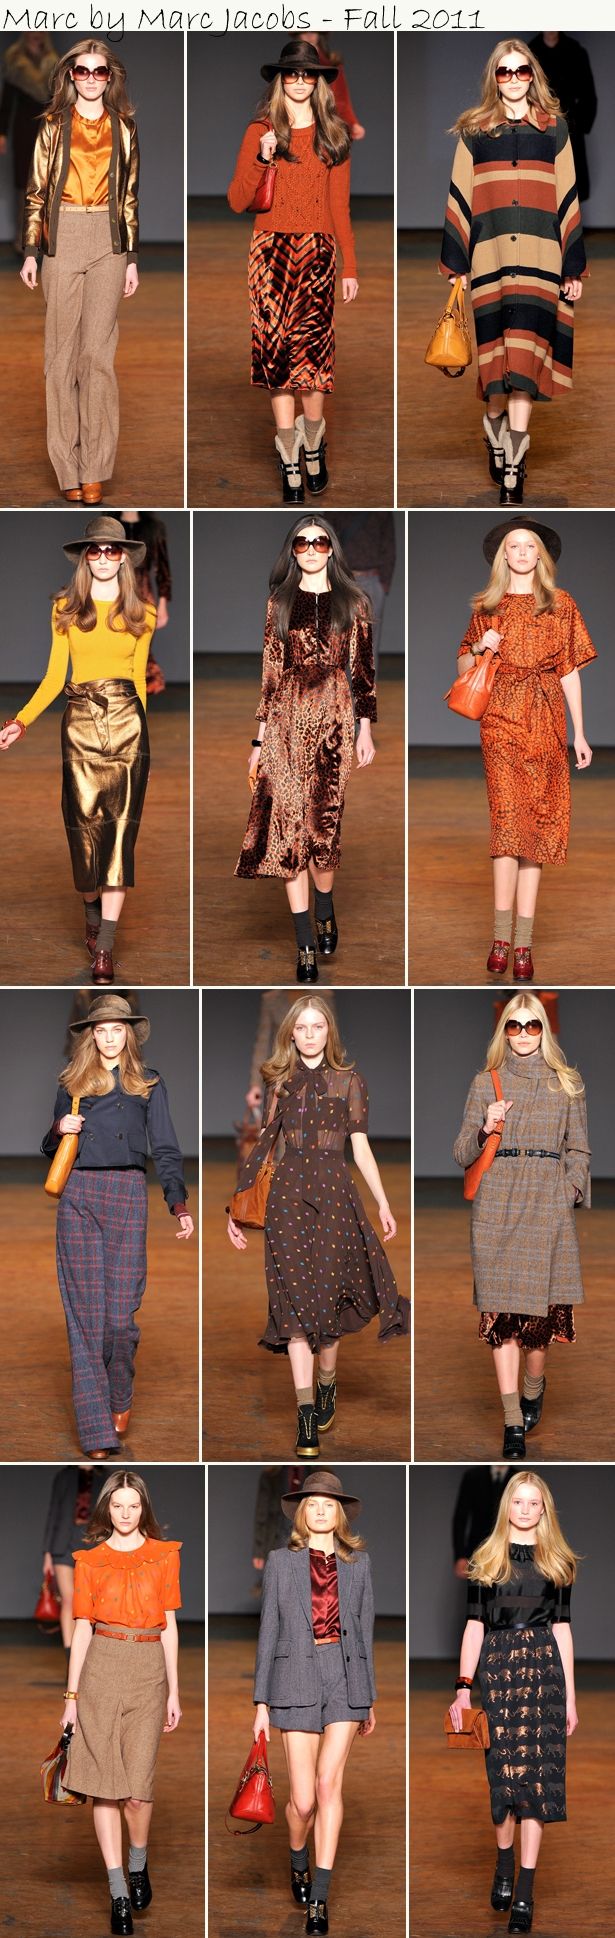 Marc by Marc Jacobs Coluna da Hilde amou: Marc by Marc Jacobs, na New York Fashion Week